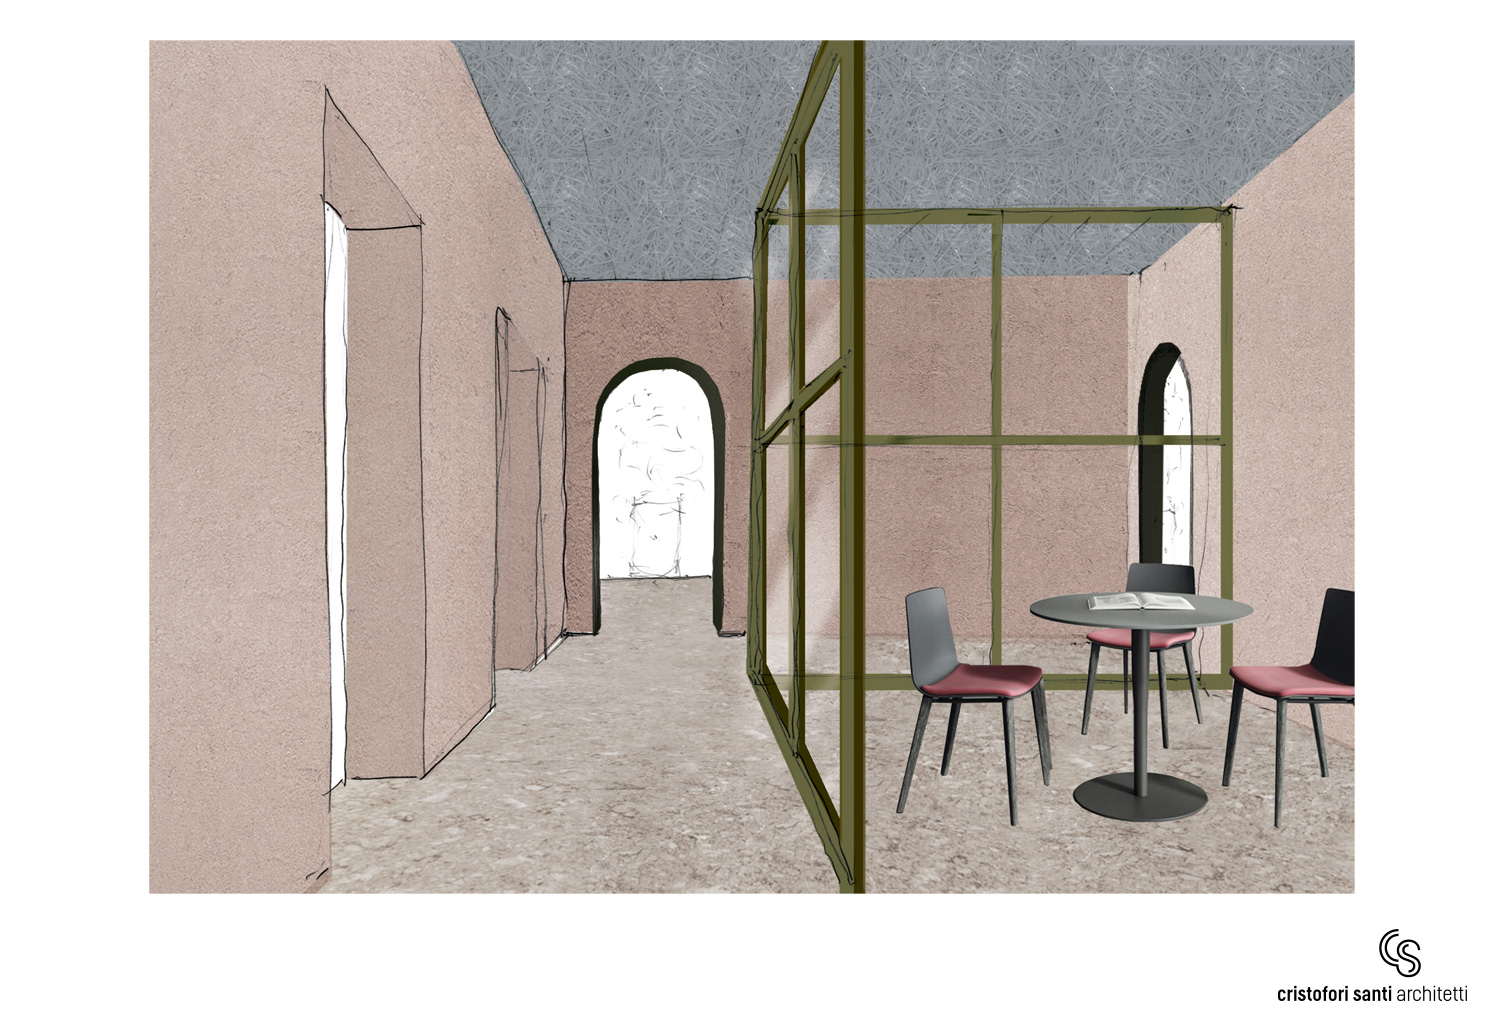 SKETCH MEETING ROOM RADICAL MOOD CRISTOFORI SANTI ARCHITETTI ASSOCIATI}